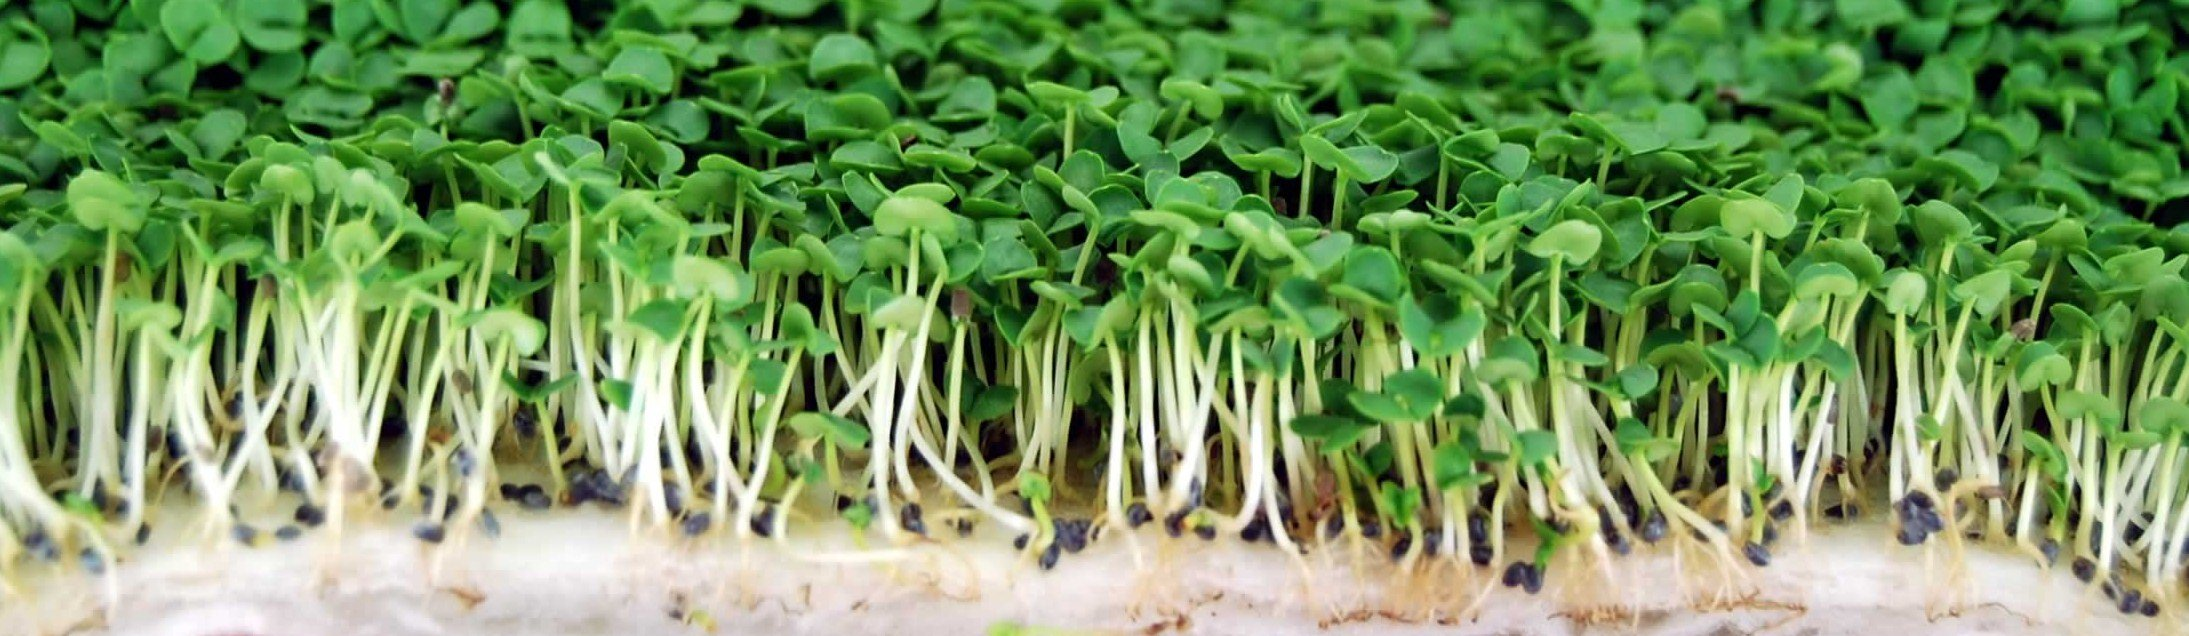 Genovese Basil Microgreens Seeds - Non-GMO Bulk Seed for Growing Micro Herbs, Indoor Gardening, Herb Garden, Micro Greens (5 Lb) by Mountain Valley Seed Company (Image #6)